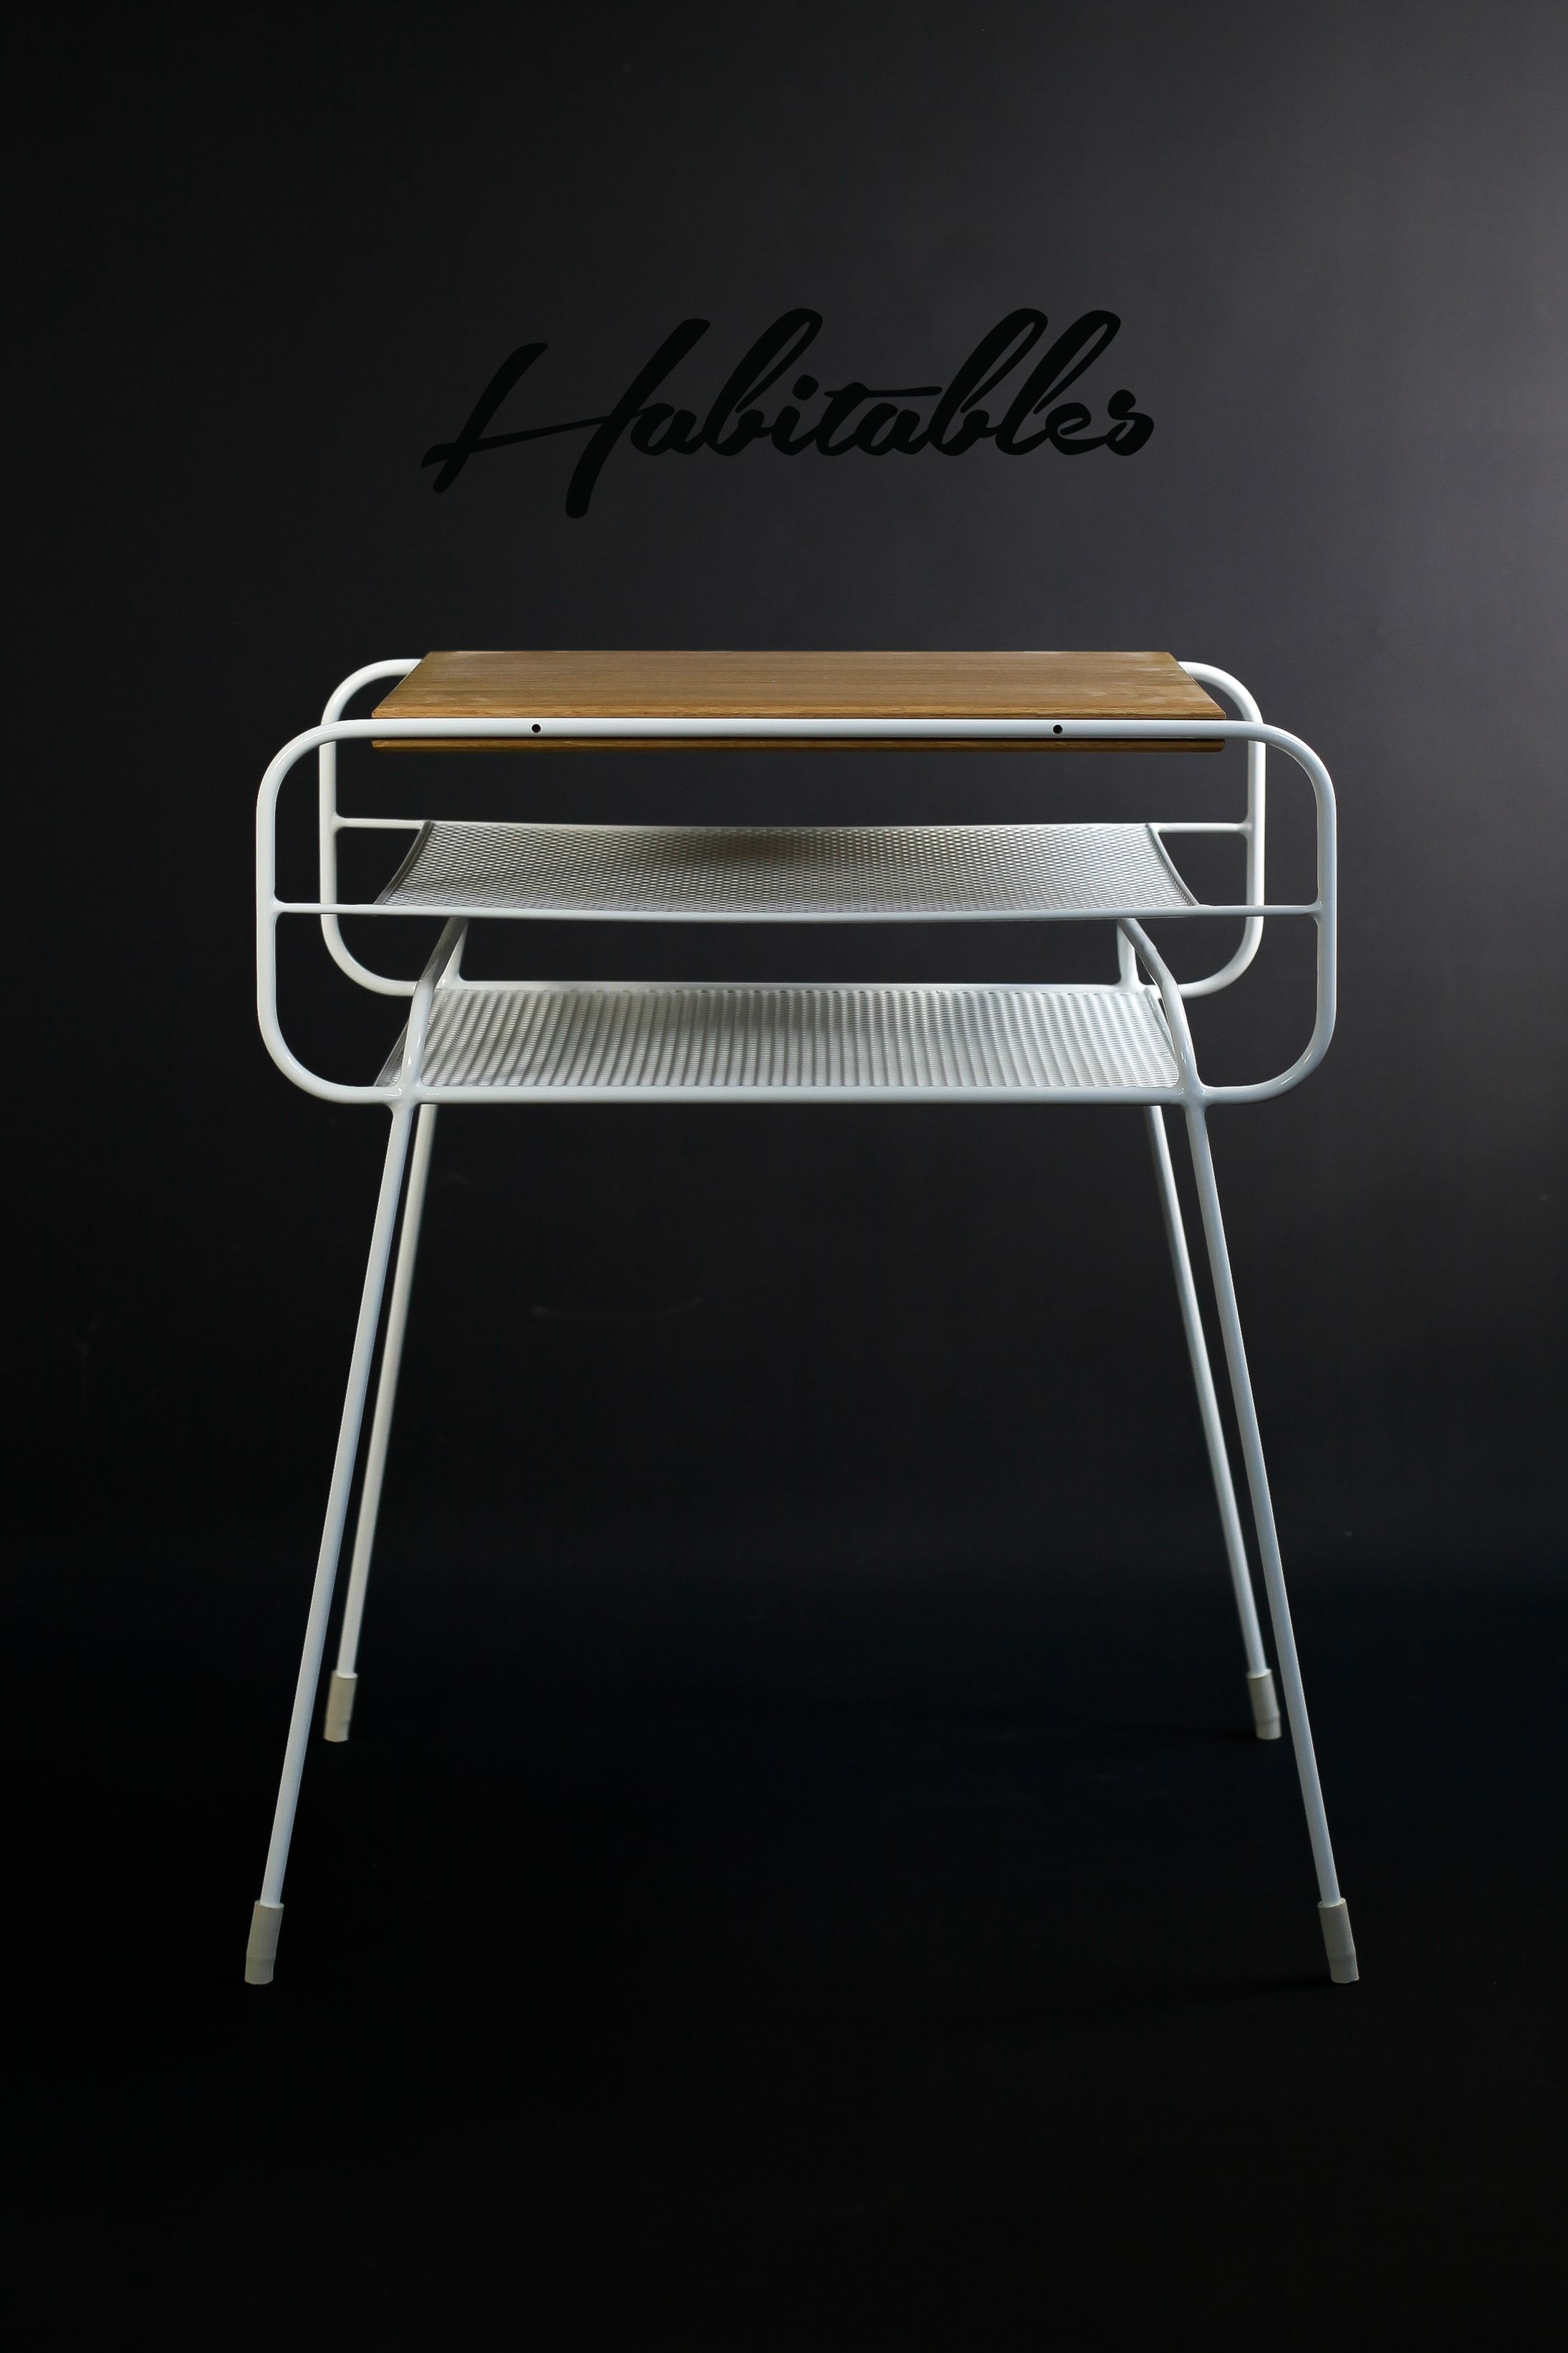 Wohndesign schlafzimmermöbel white on black double nightstand iron u wood serie on behance